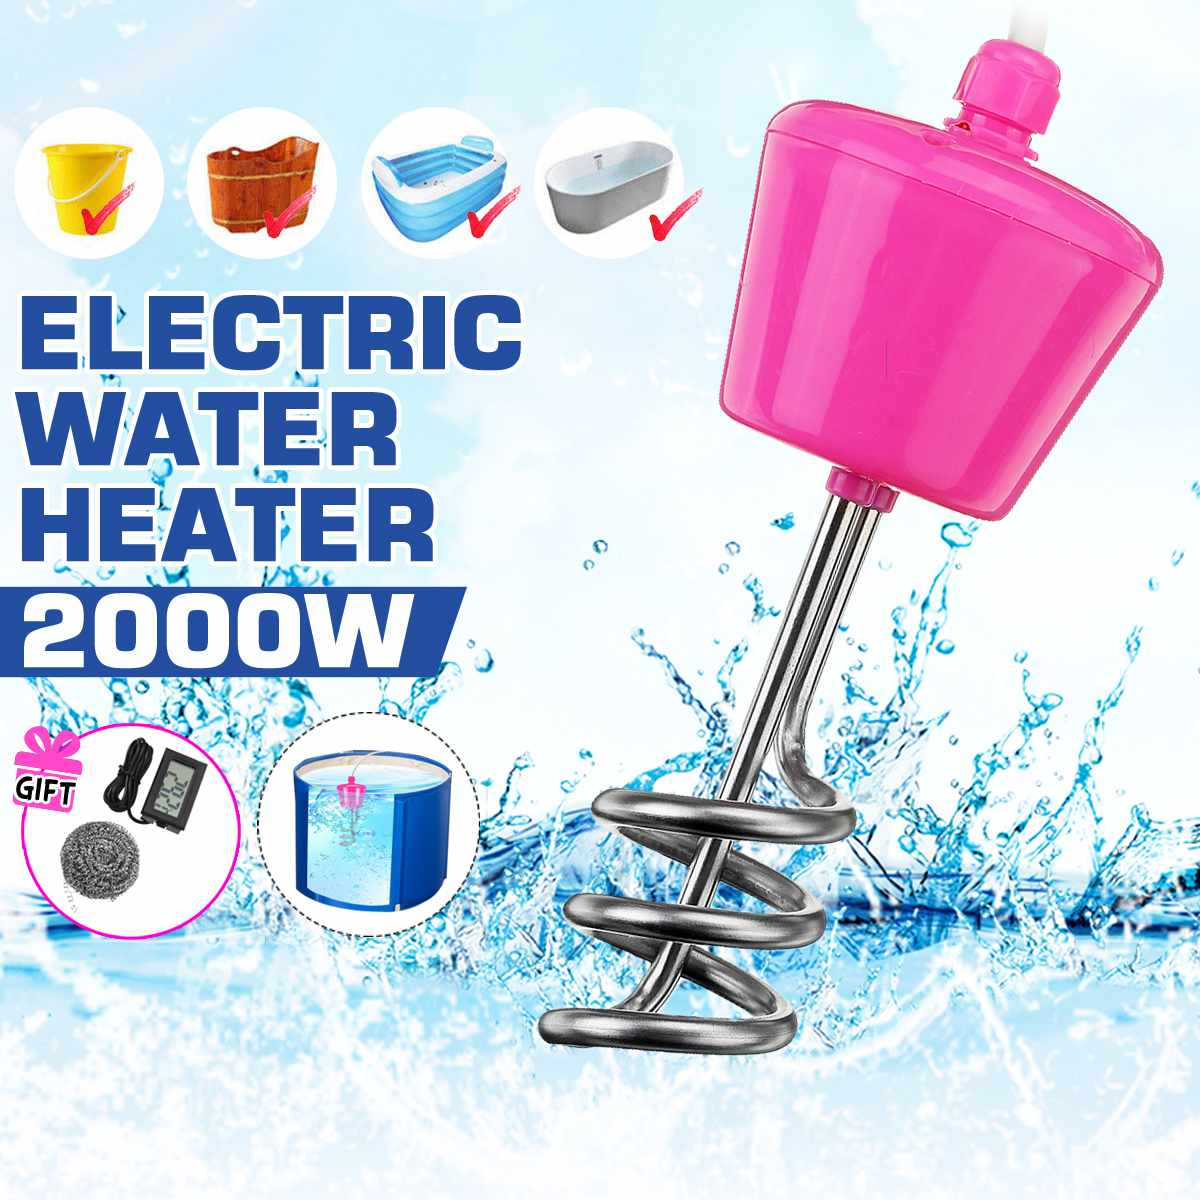 2000W Floating Electric Heater Boiler Water Heating Portable Immersion Suspension Bathroom Swimming Pool Heater EU 3 Meter Cable